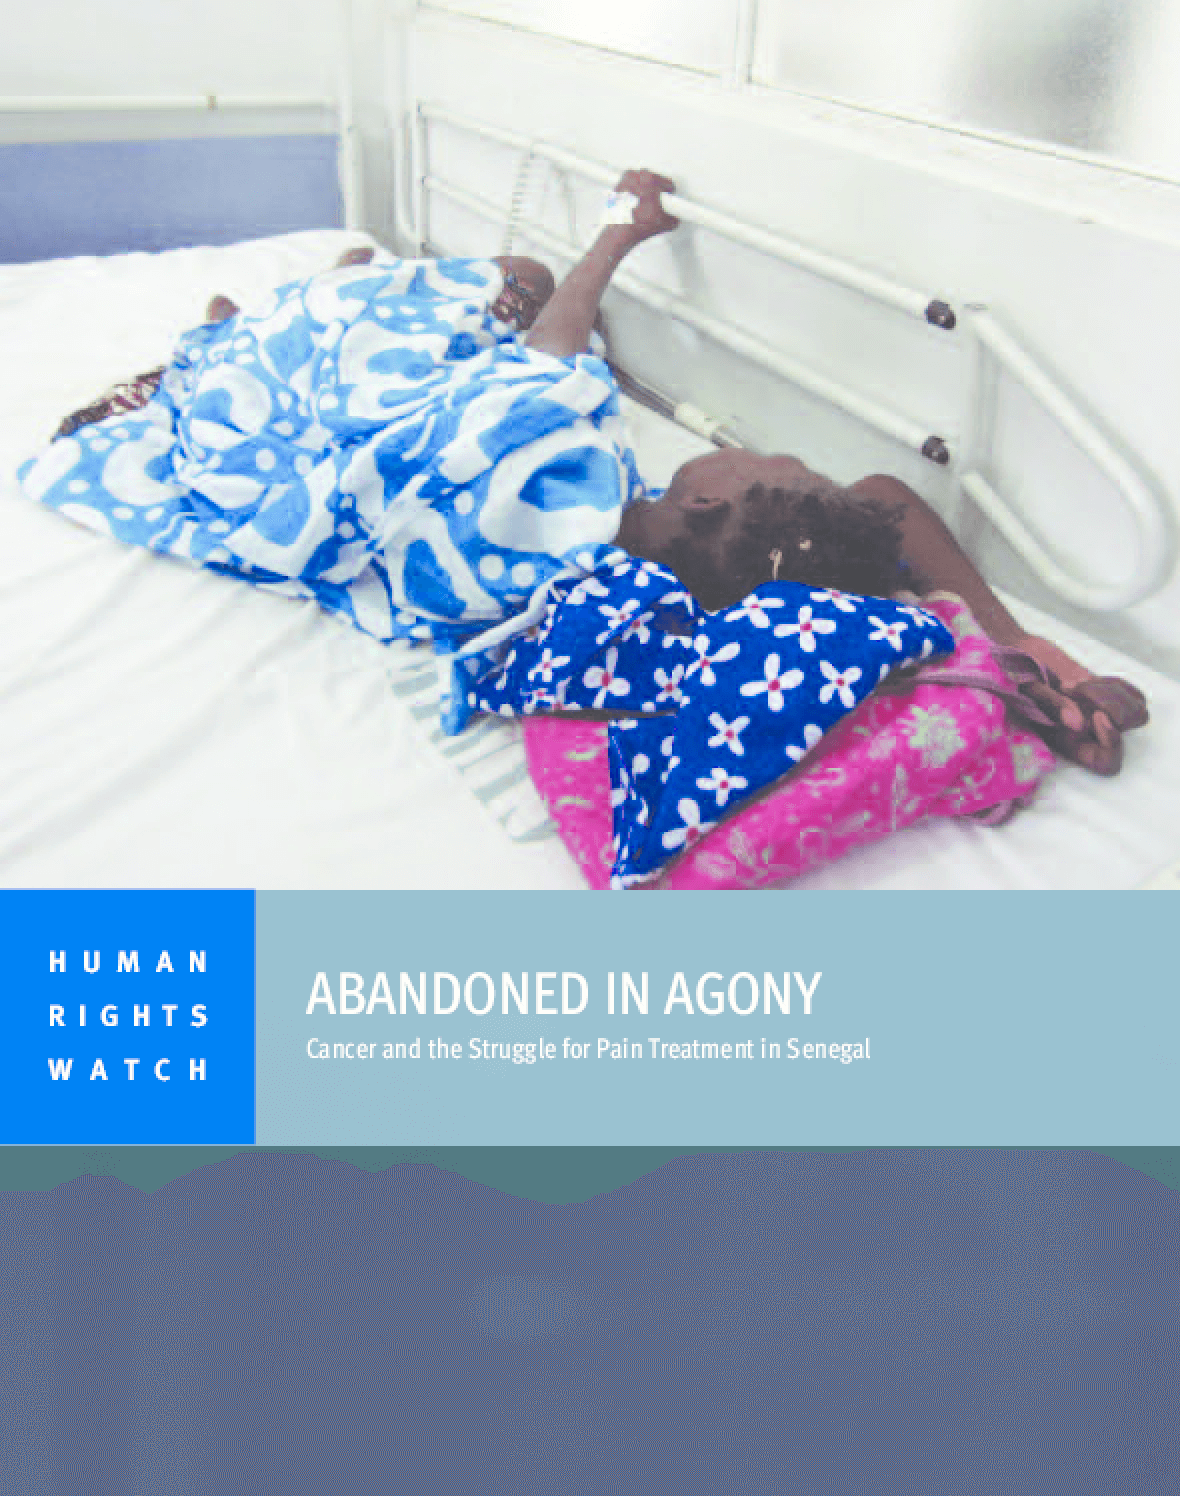 Abandoned in Agony: Cancer and the Struggle for Pain Treatment in Senegal